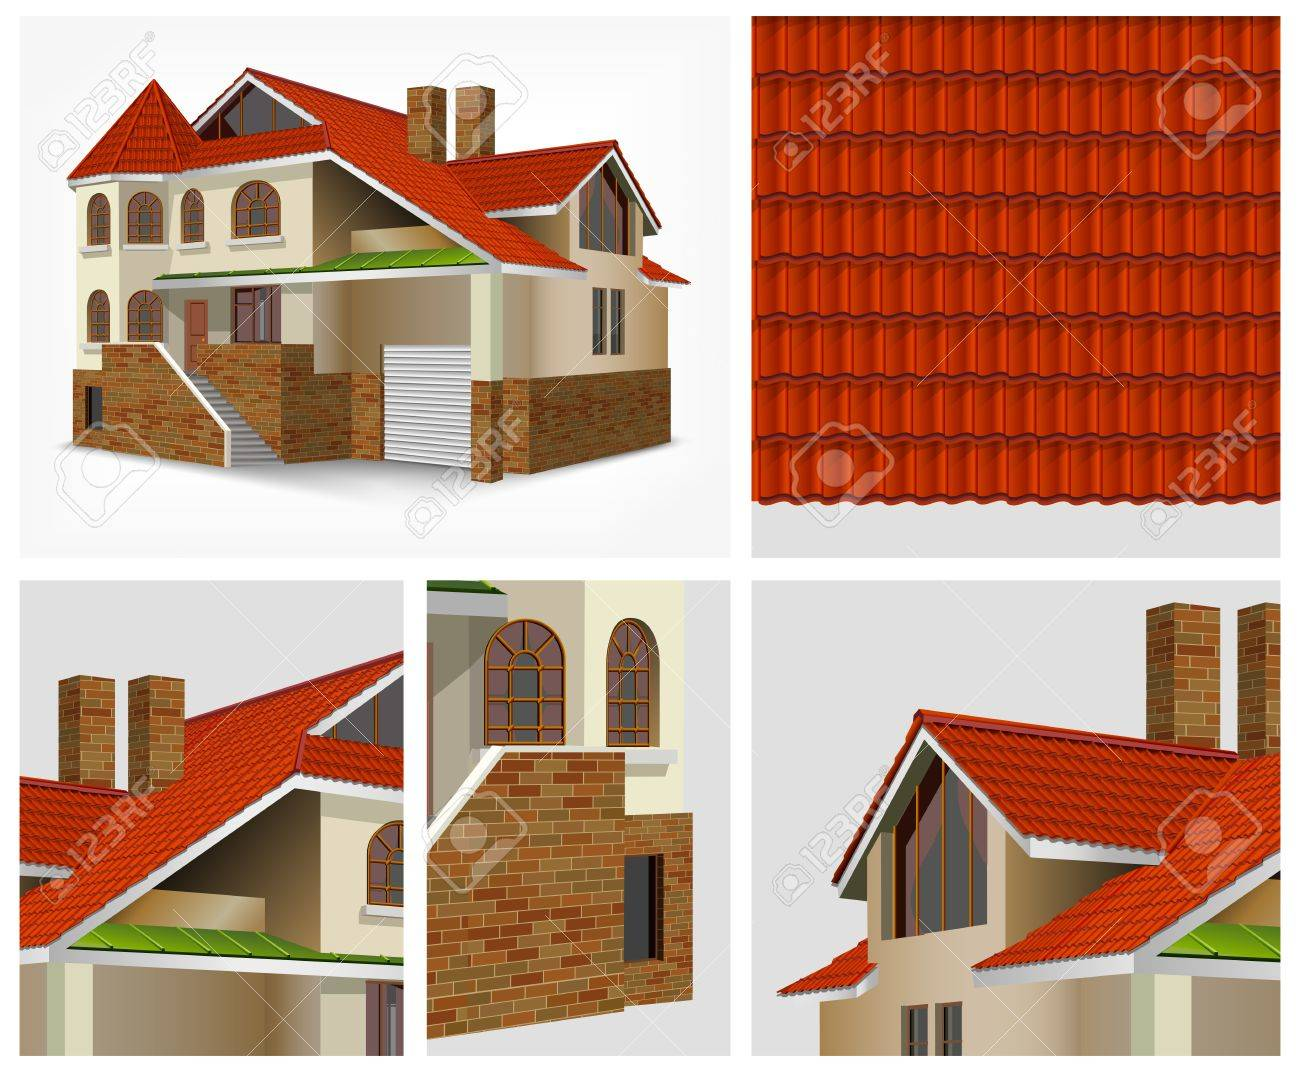 Details of house with red roof tiles in section Stock Vector - 20379191